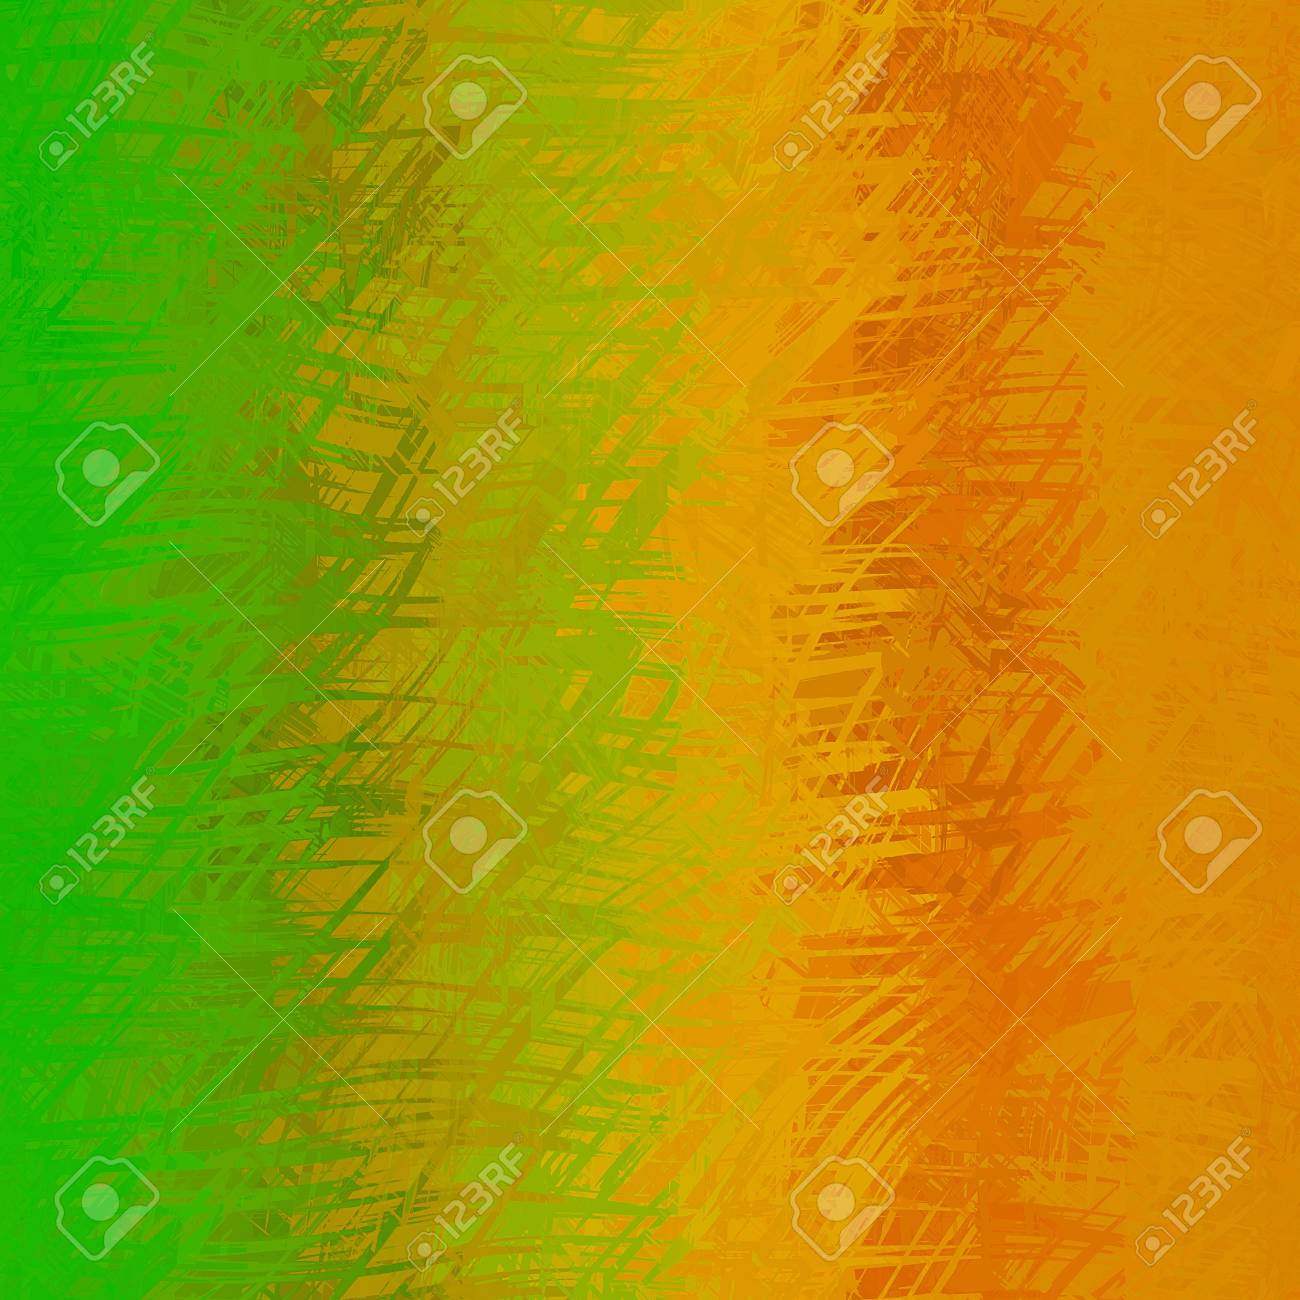 Orange Green Abstract Texture With Random Brush Strokes Background